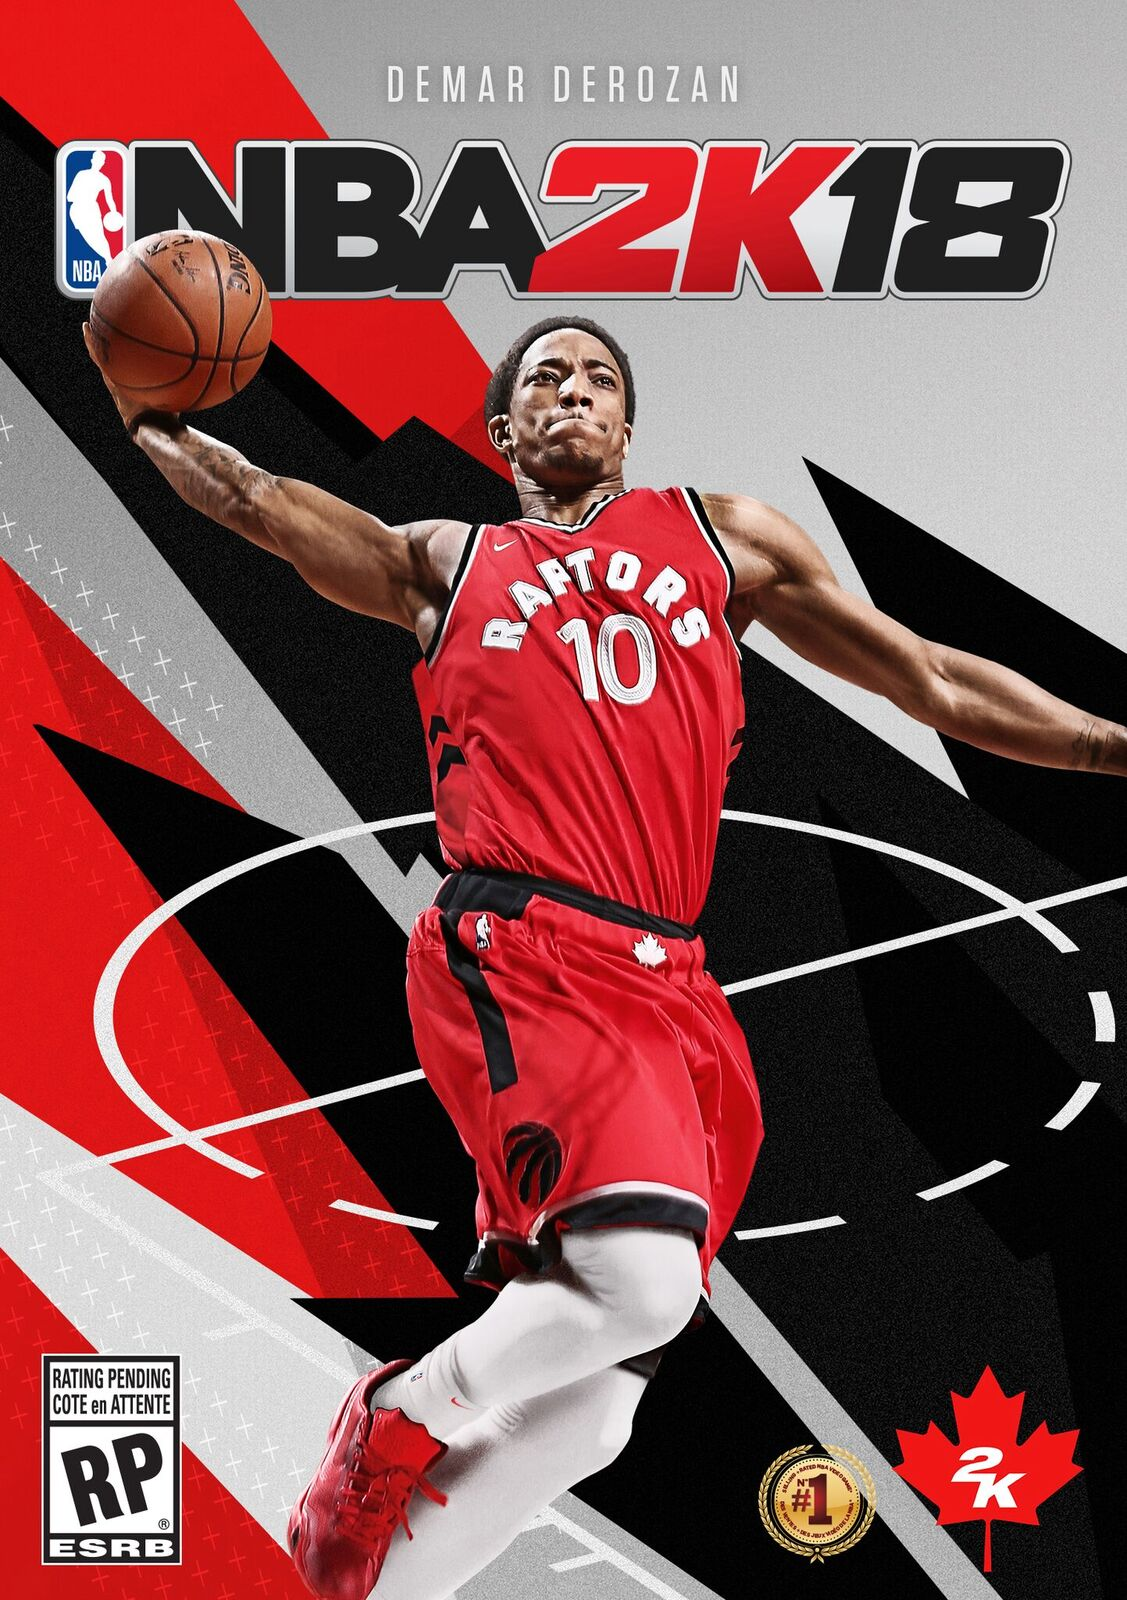 532295a13 DeMar DeRozan is the first athlete to ever be on  NBA 2K18  Canadian cover